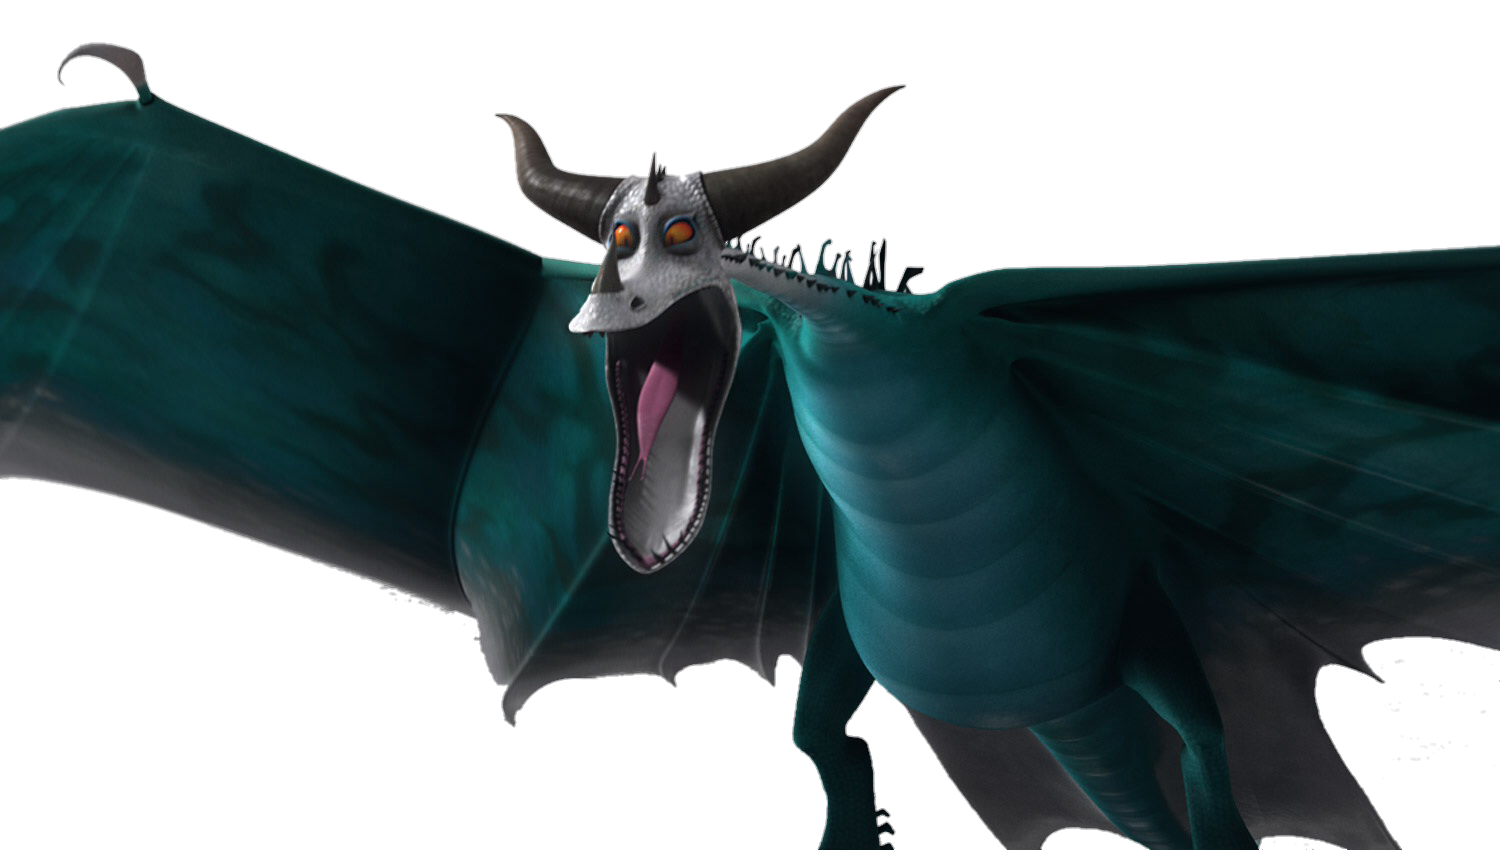 Learn how to draw changewing from how to train your dragon how to - Learn How To Draw Changewing From How To Train Your Dragon How To 32